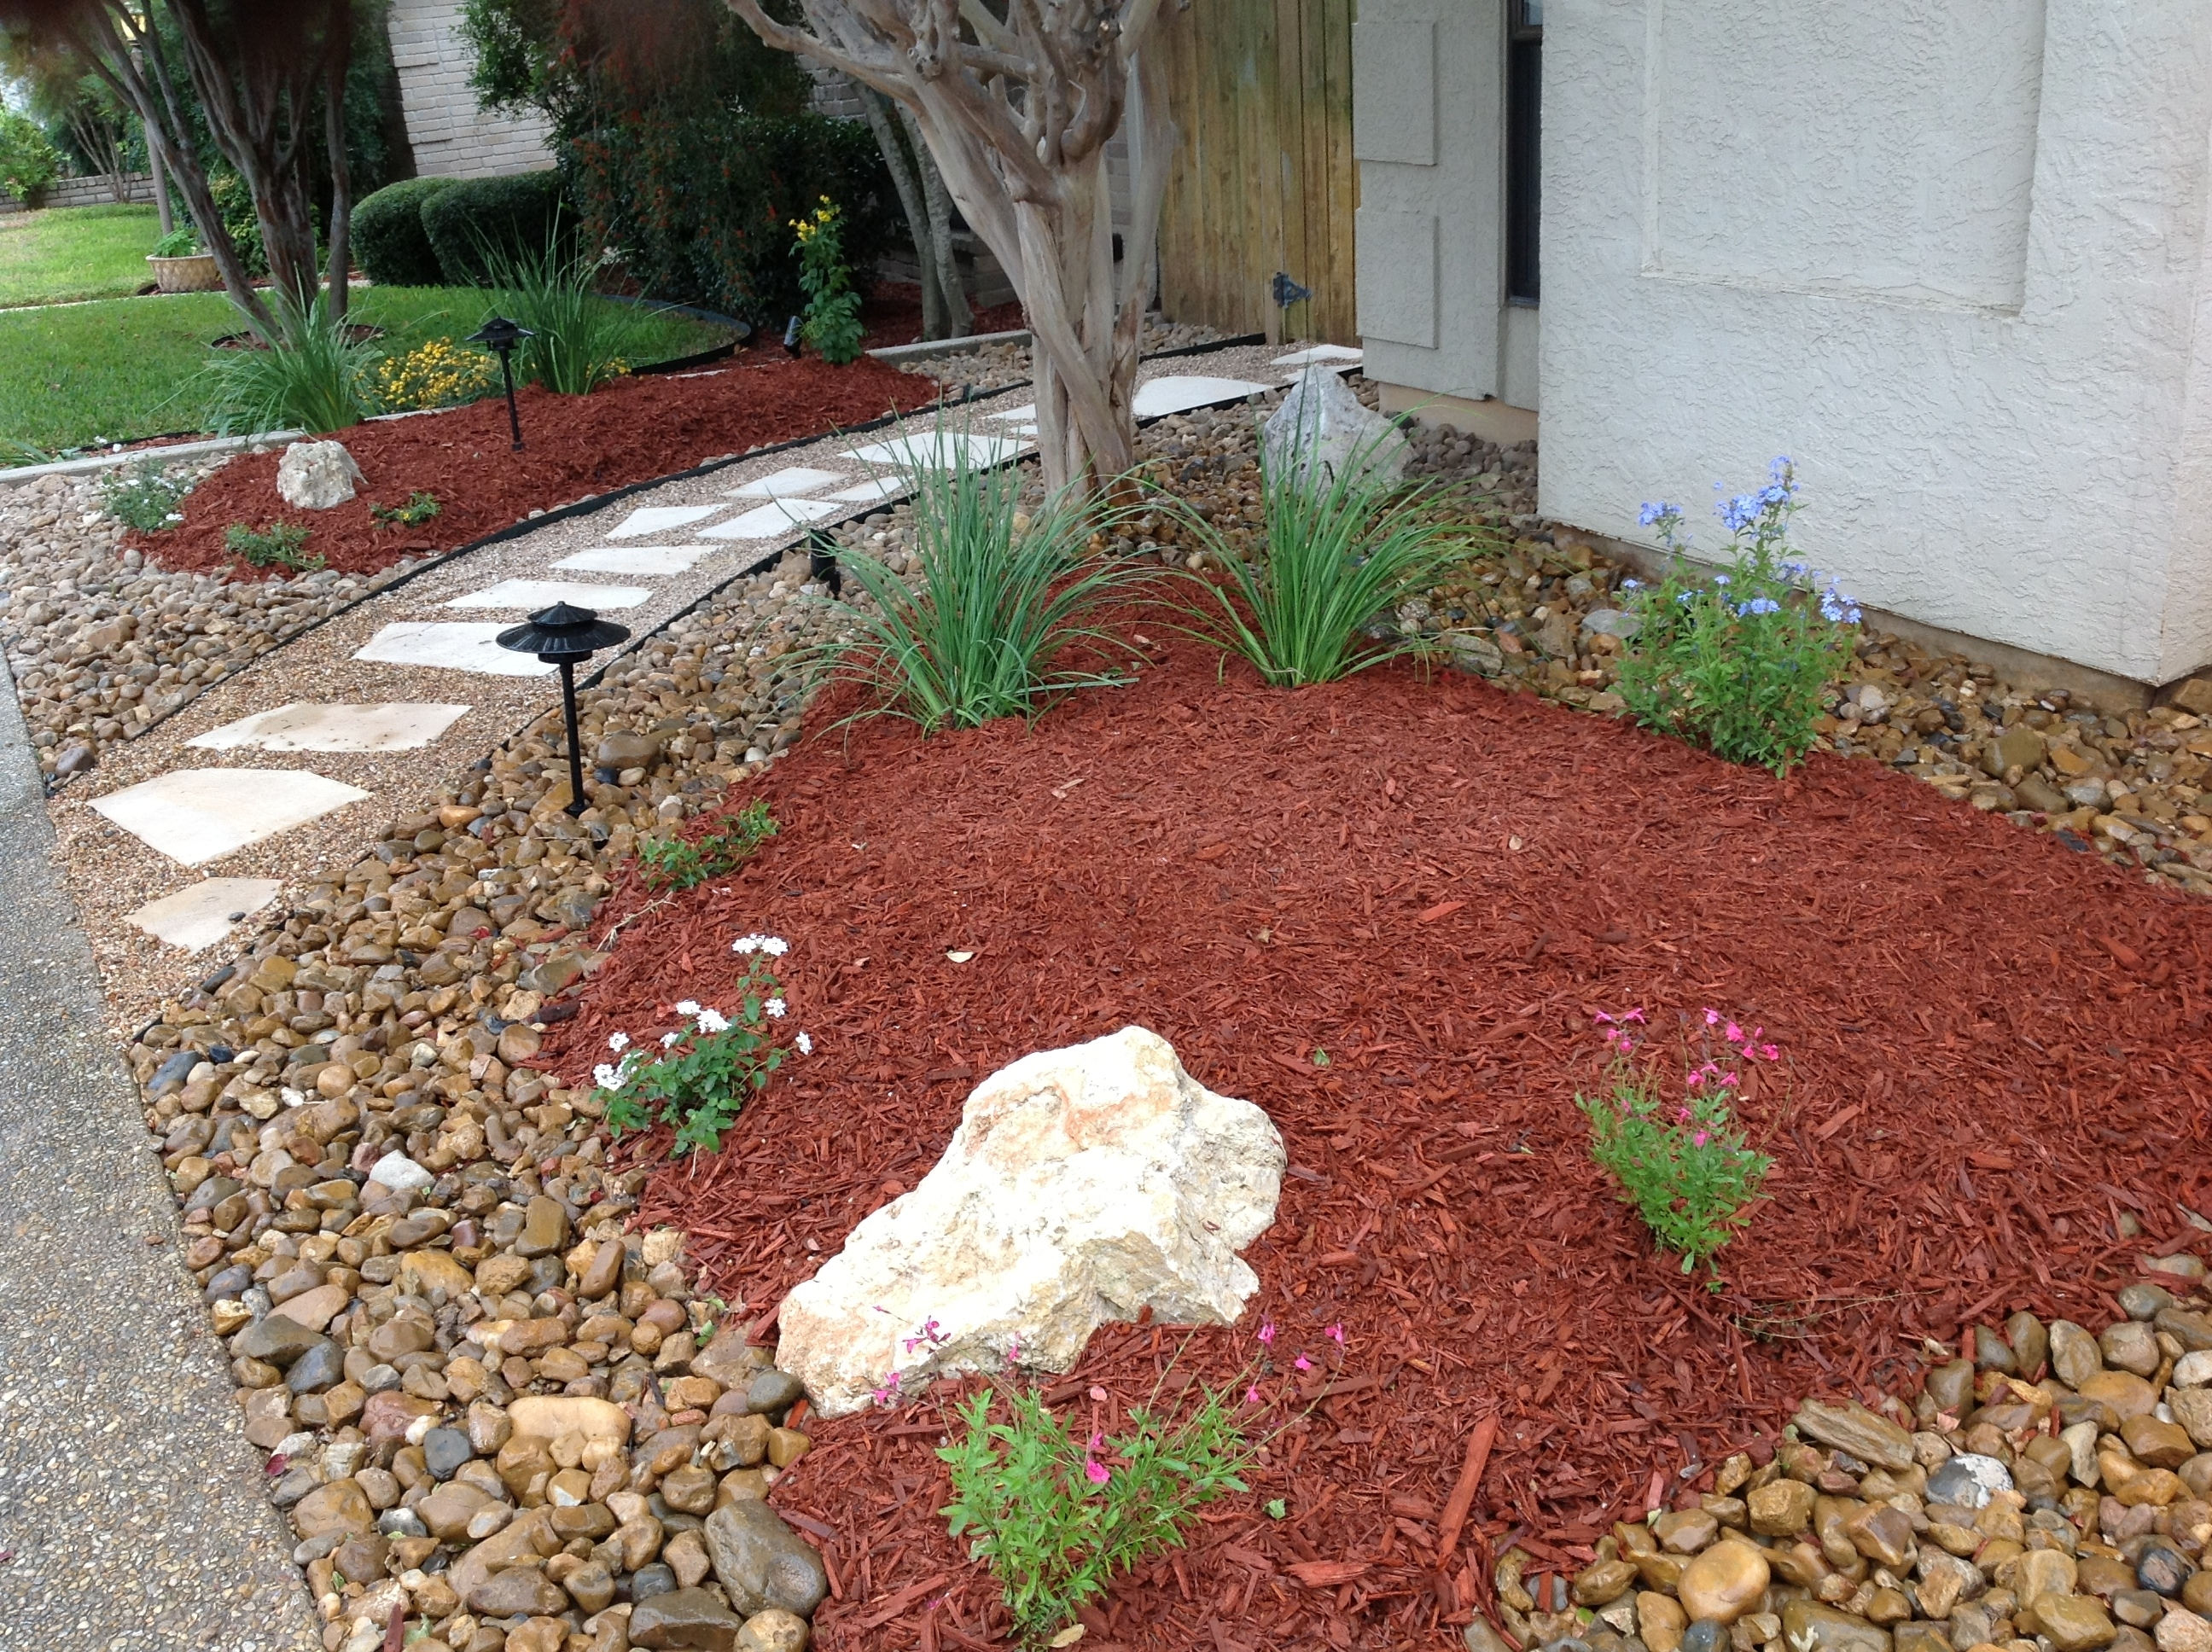 Rocks Against Paths Bark Mulch In Planting Area Stepping Stones In Landscaping Bark Landscaping Bark For Season